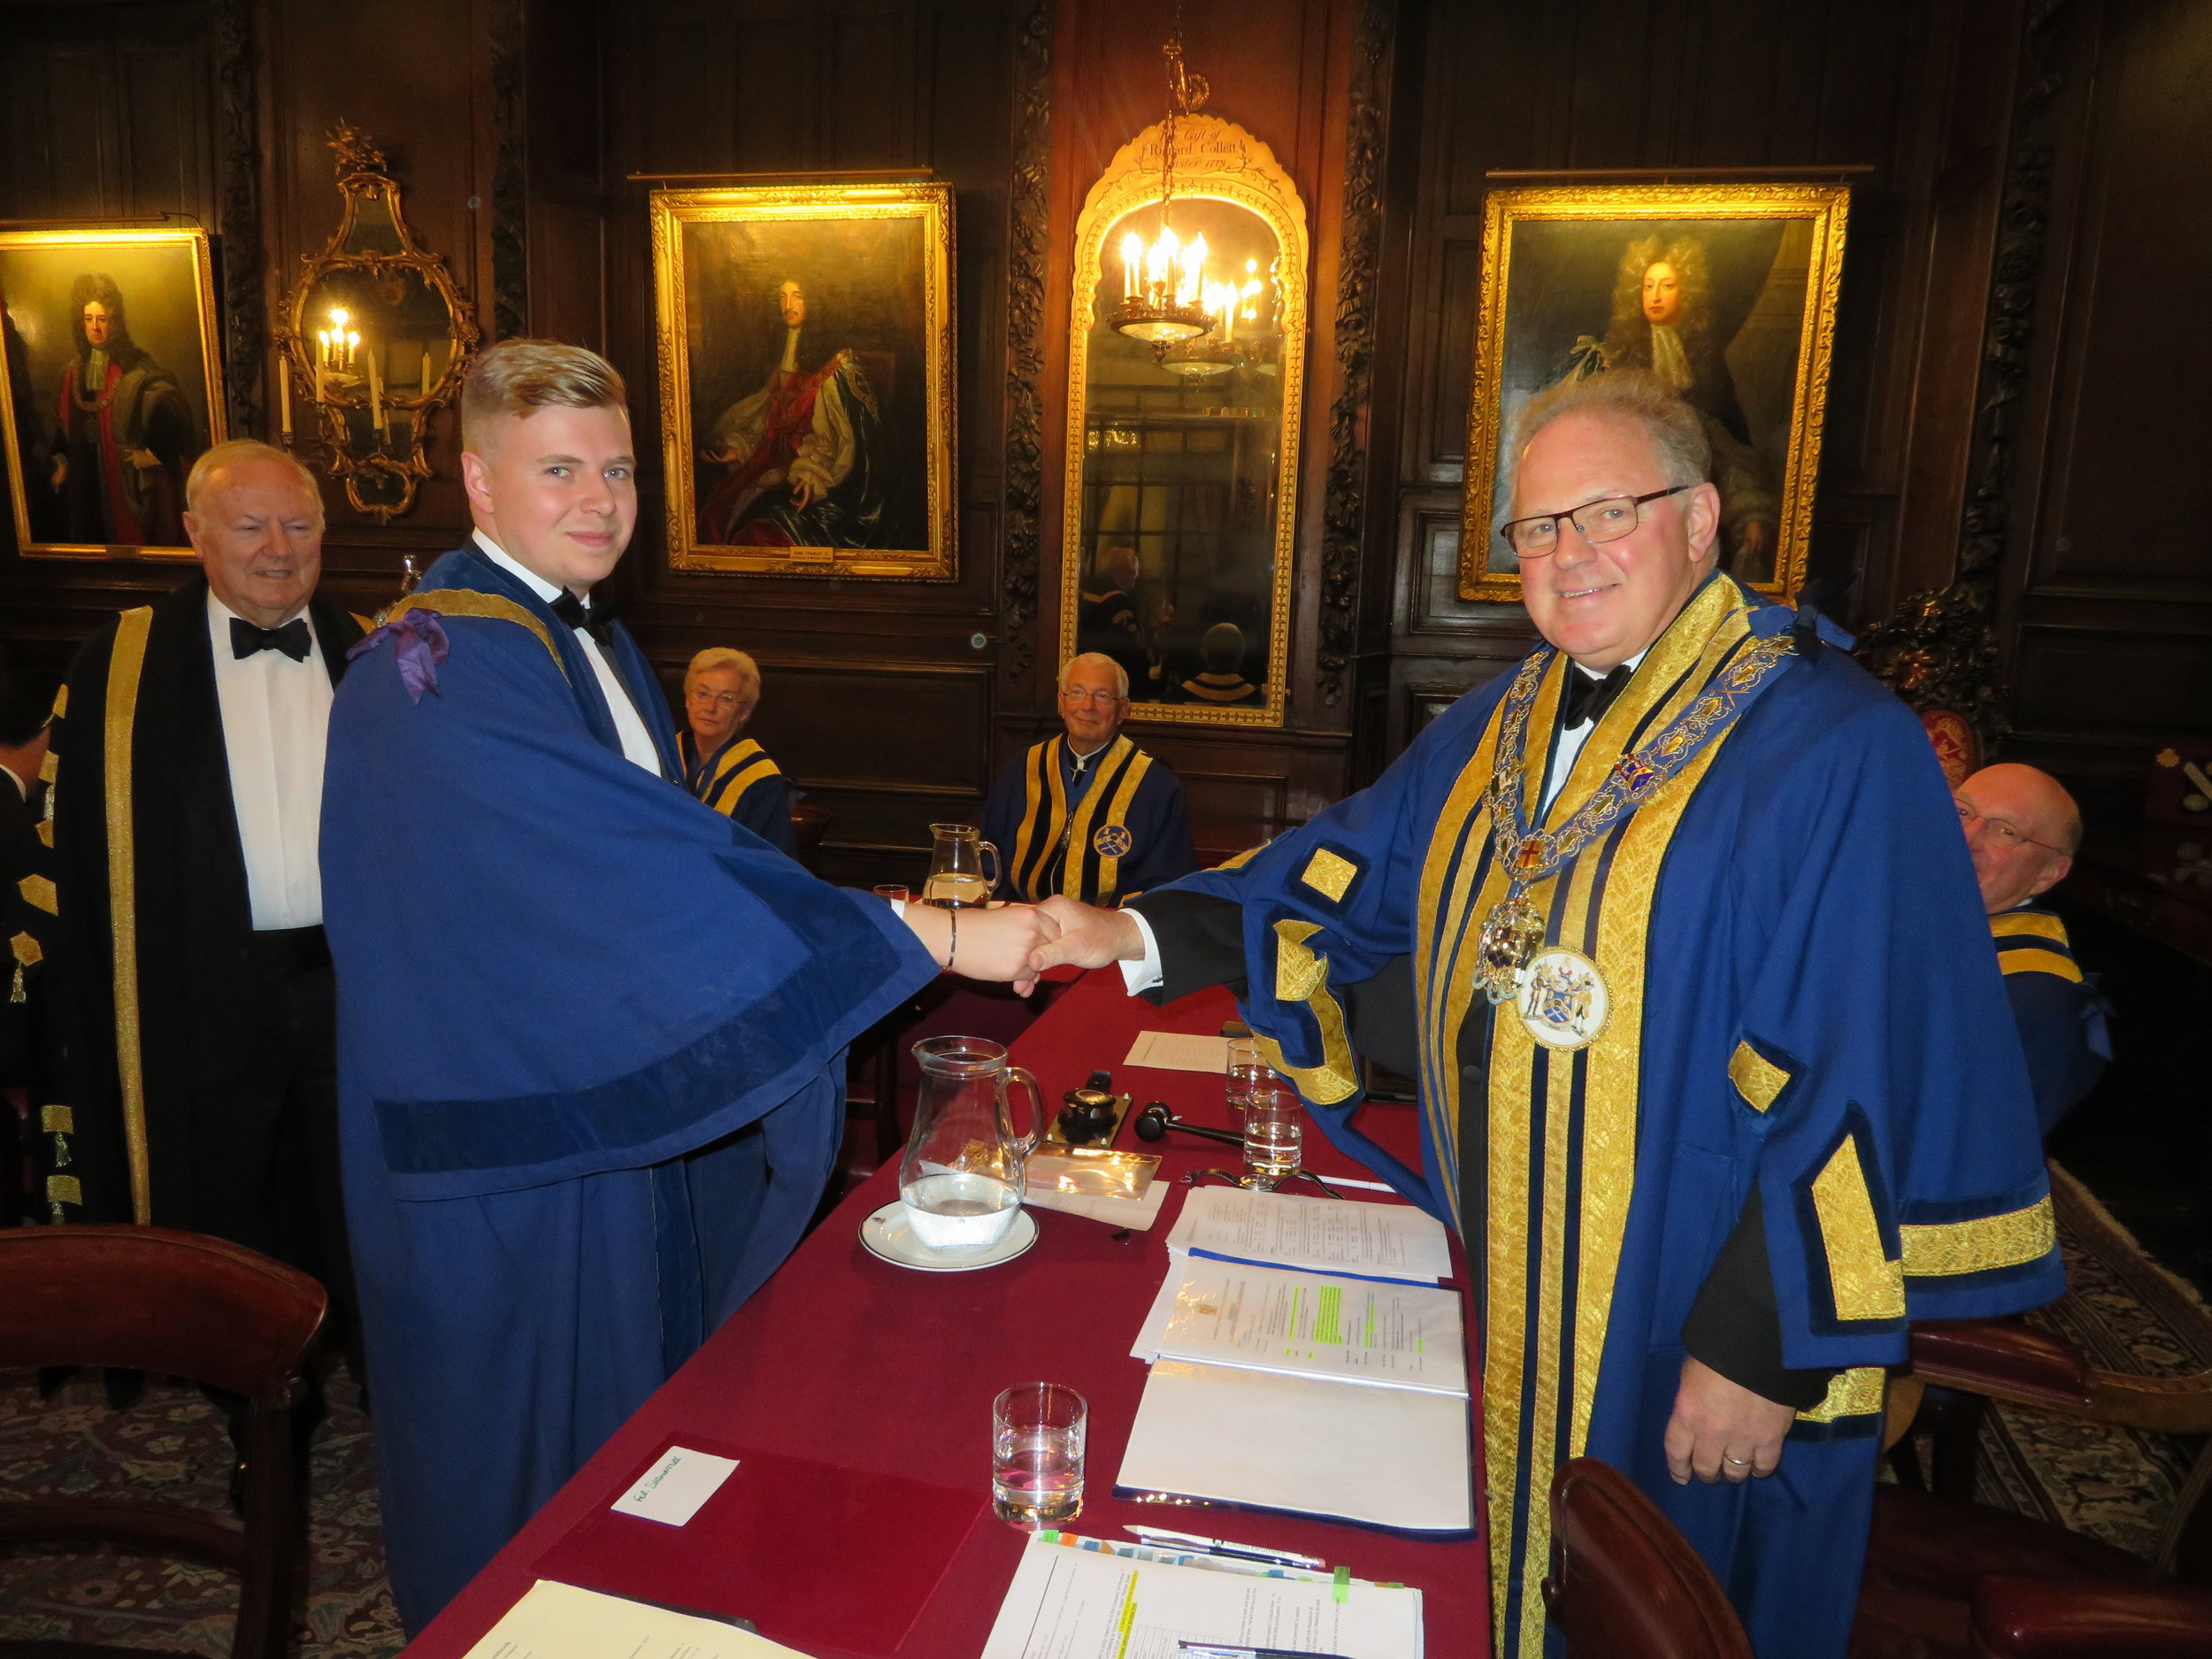 Liveryman Christopher Edgcumbe & The Master